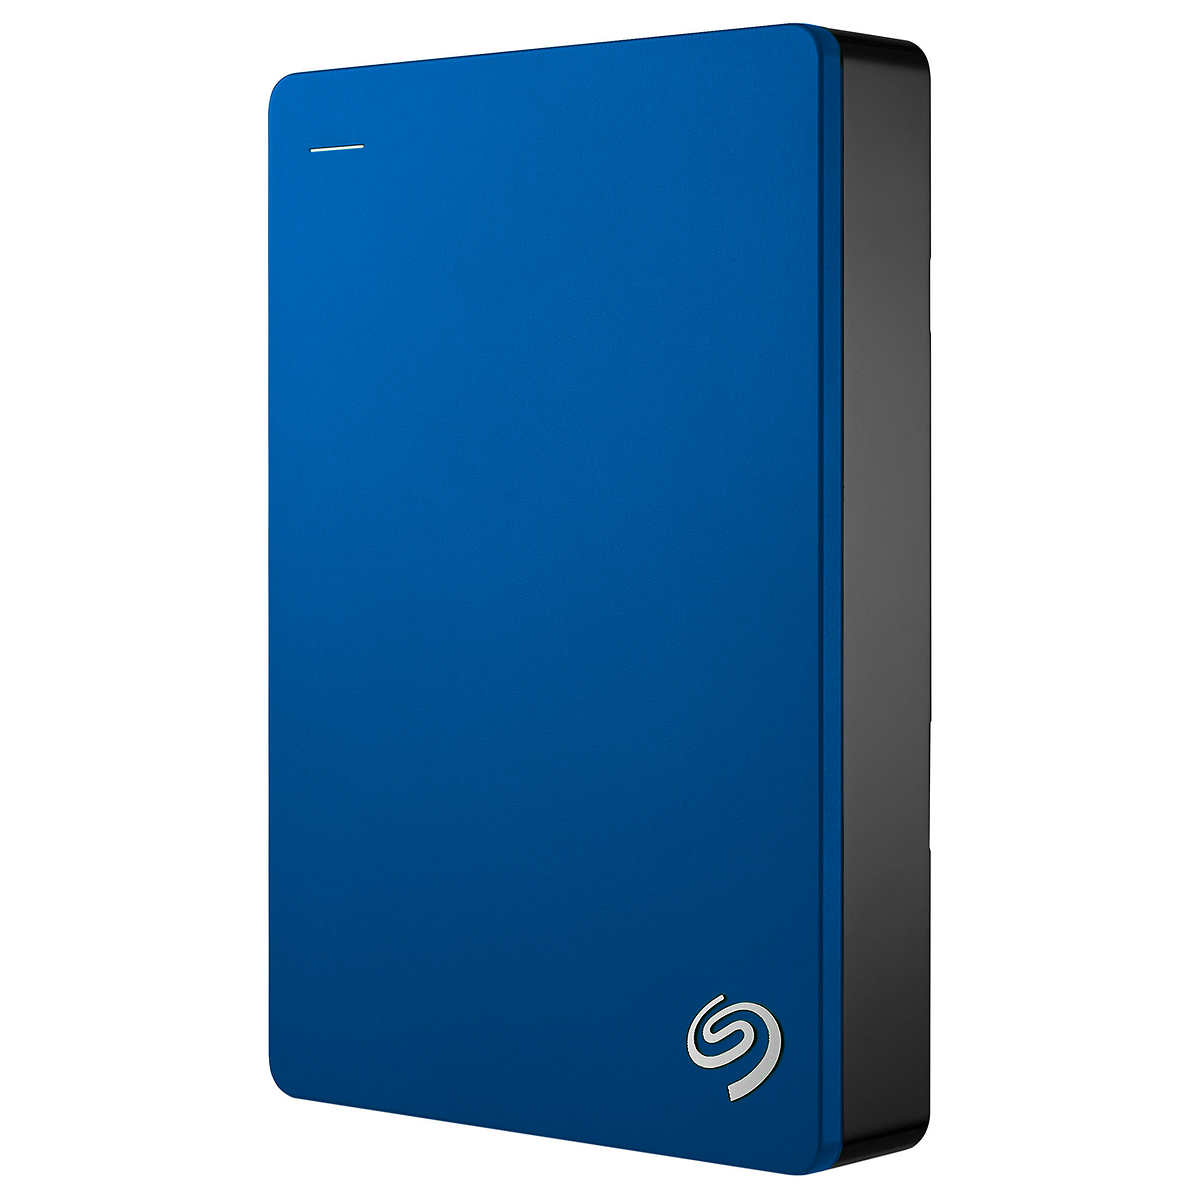 DYSK SEAGATE BACKUP PLUS PORTABLE 5TB OKAZJA FV23%